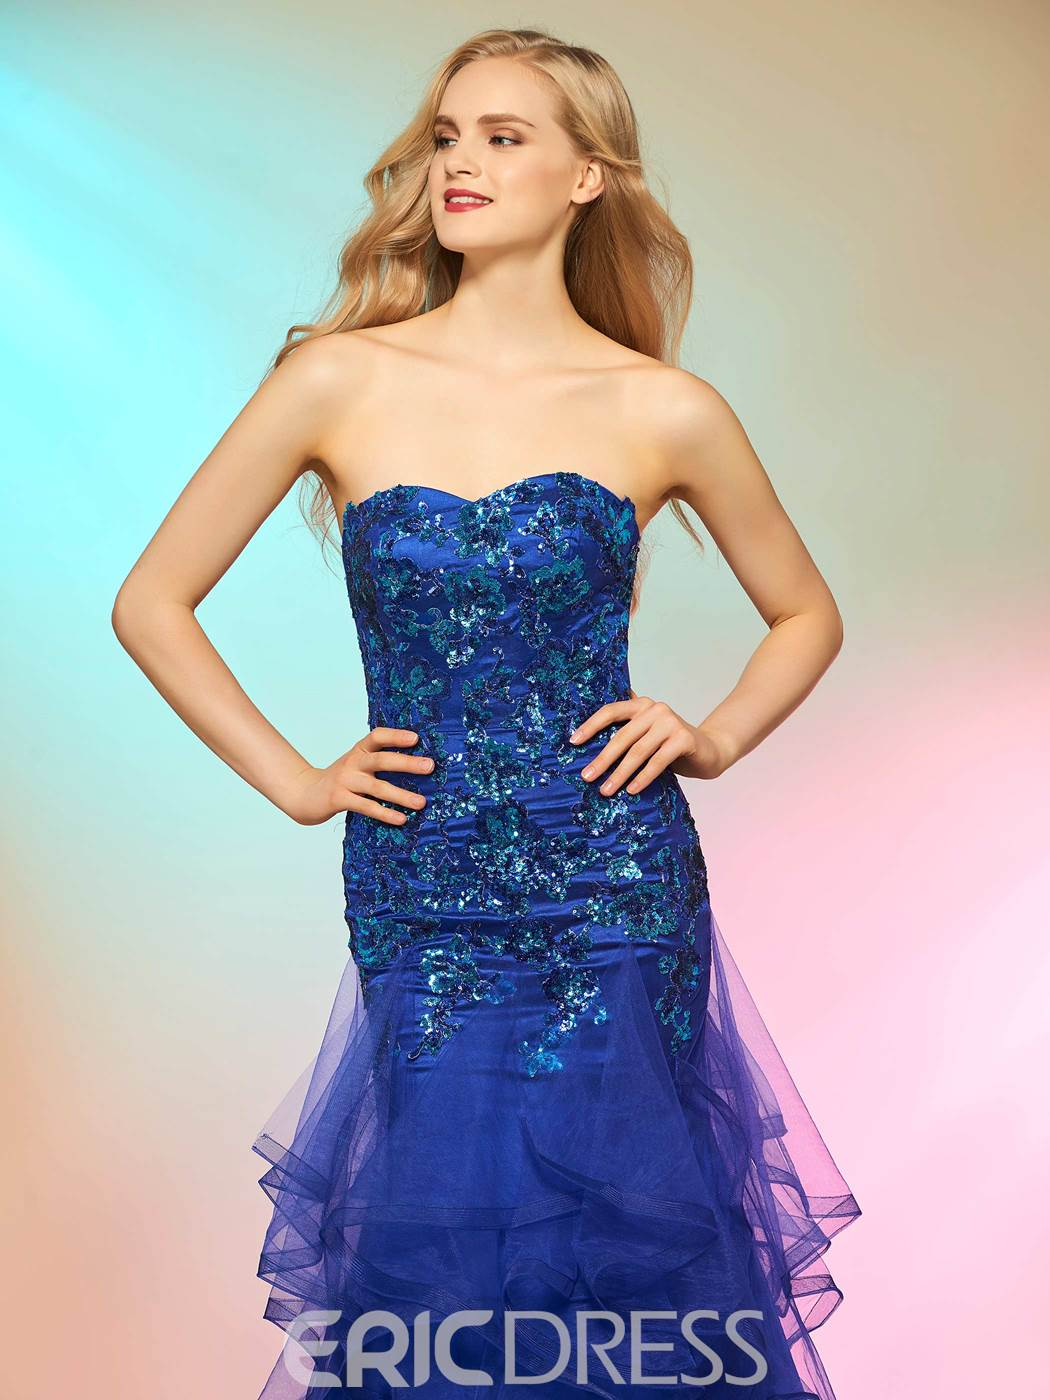 Ericdress Elegant Mermaid Sweetheart Sequin Applique Prom Dress